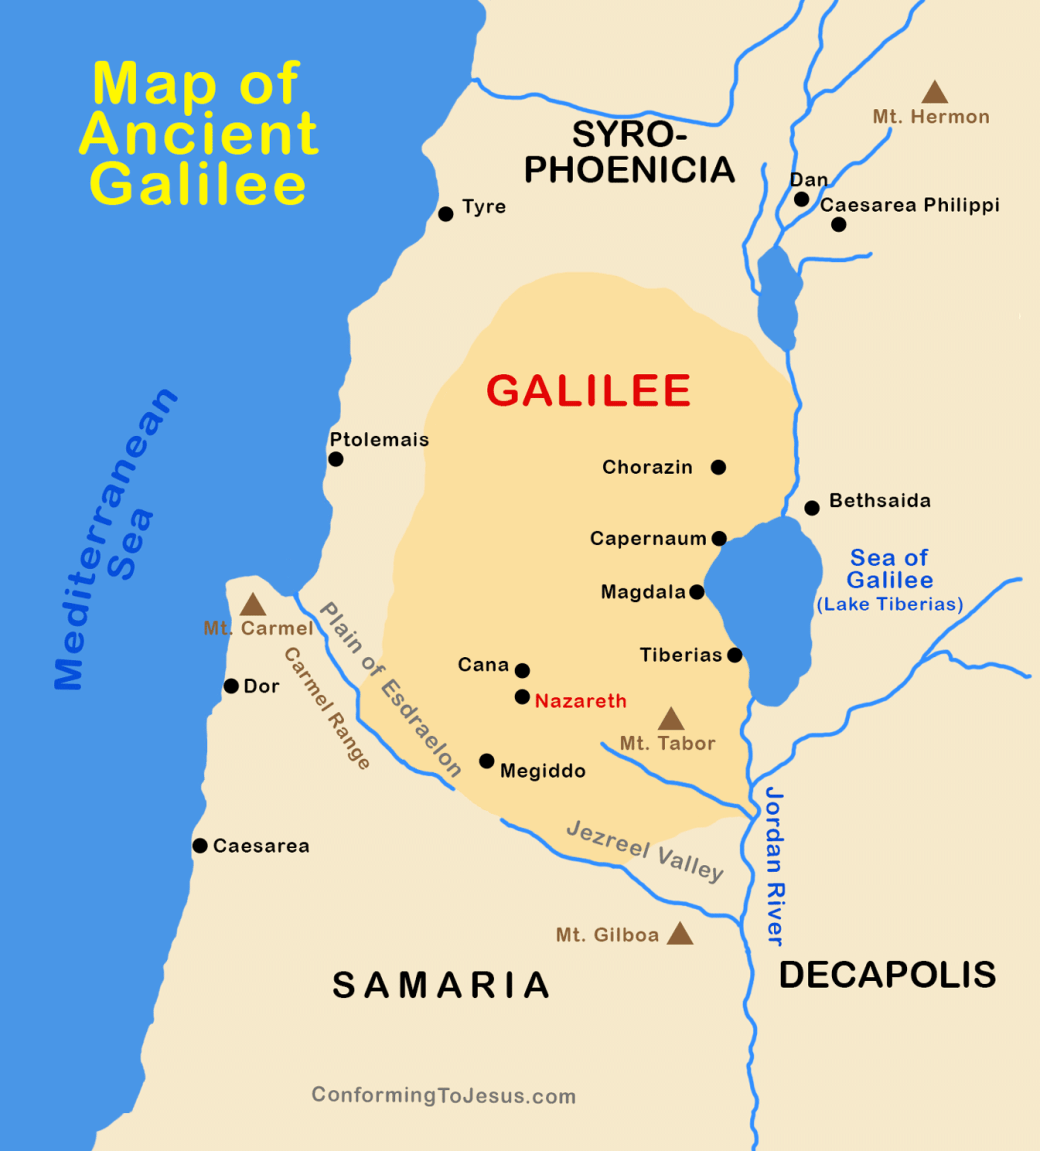 map of ancient galilee and egypt www.atozomm.com